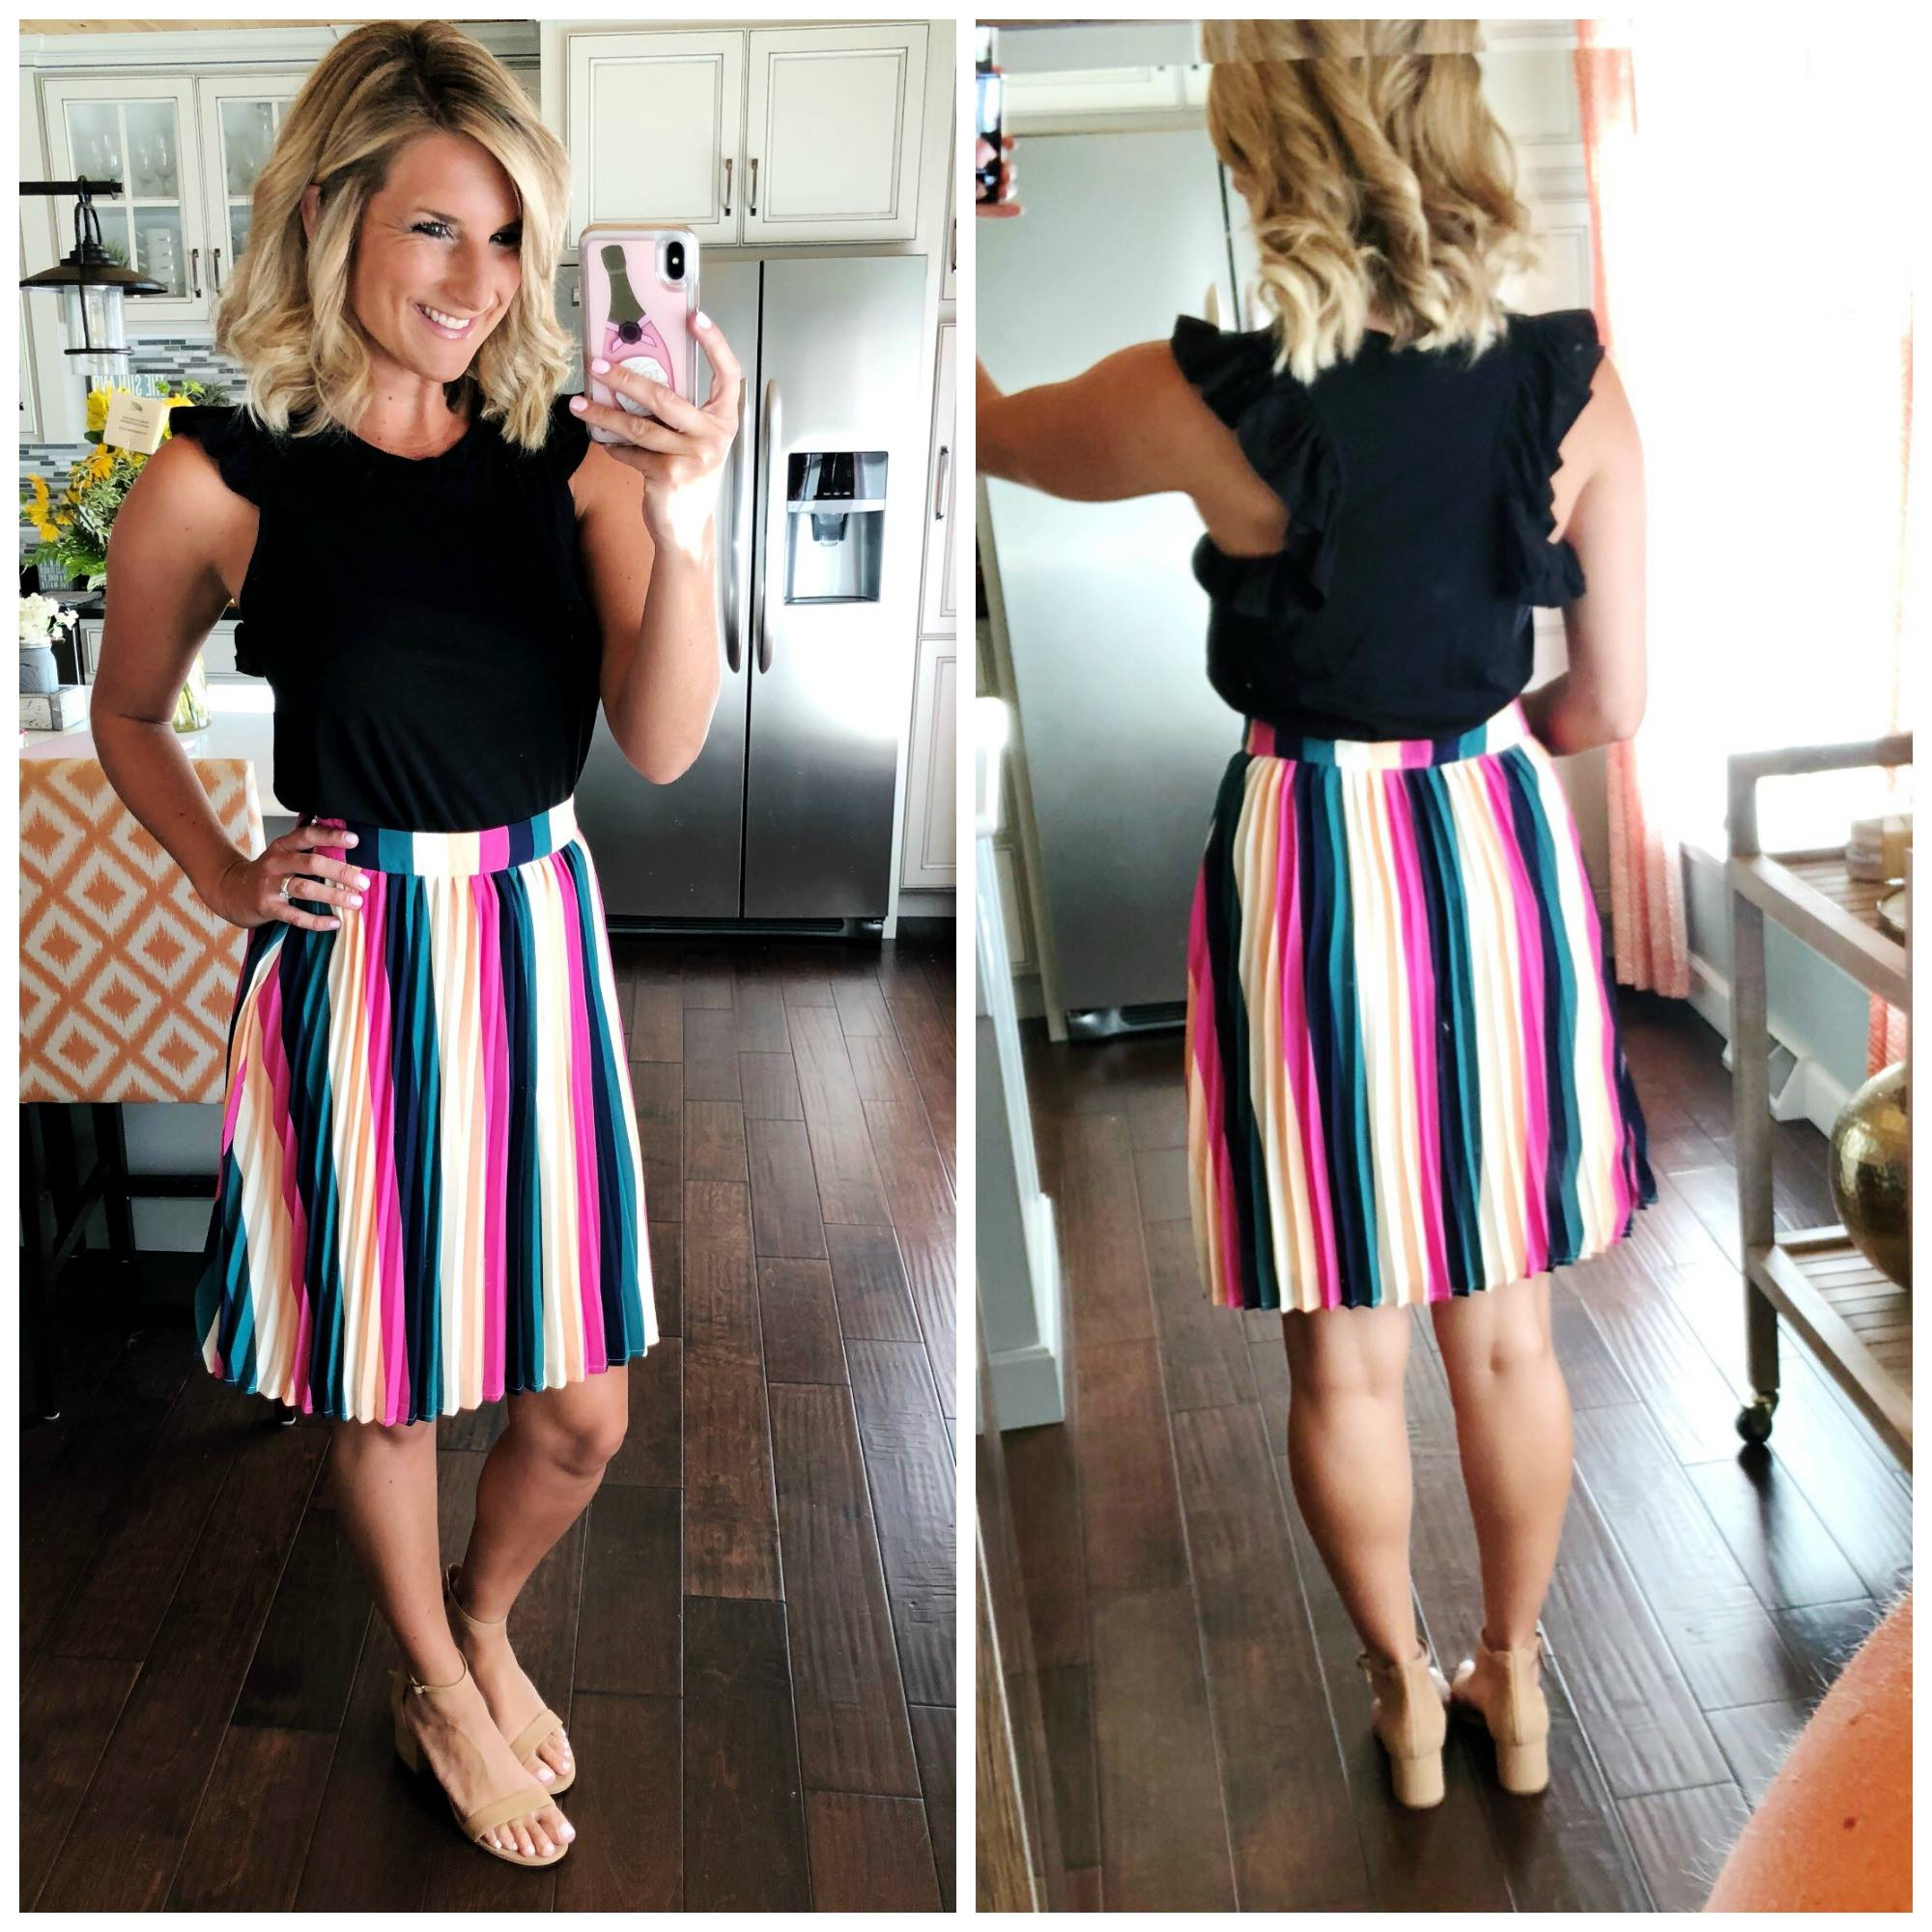 What to Wear to Work // Summer Work Wear // How to Style a Colorful Skirt